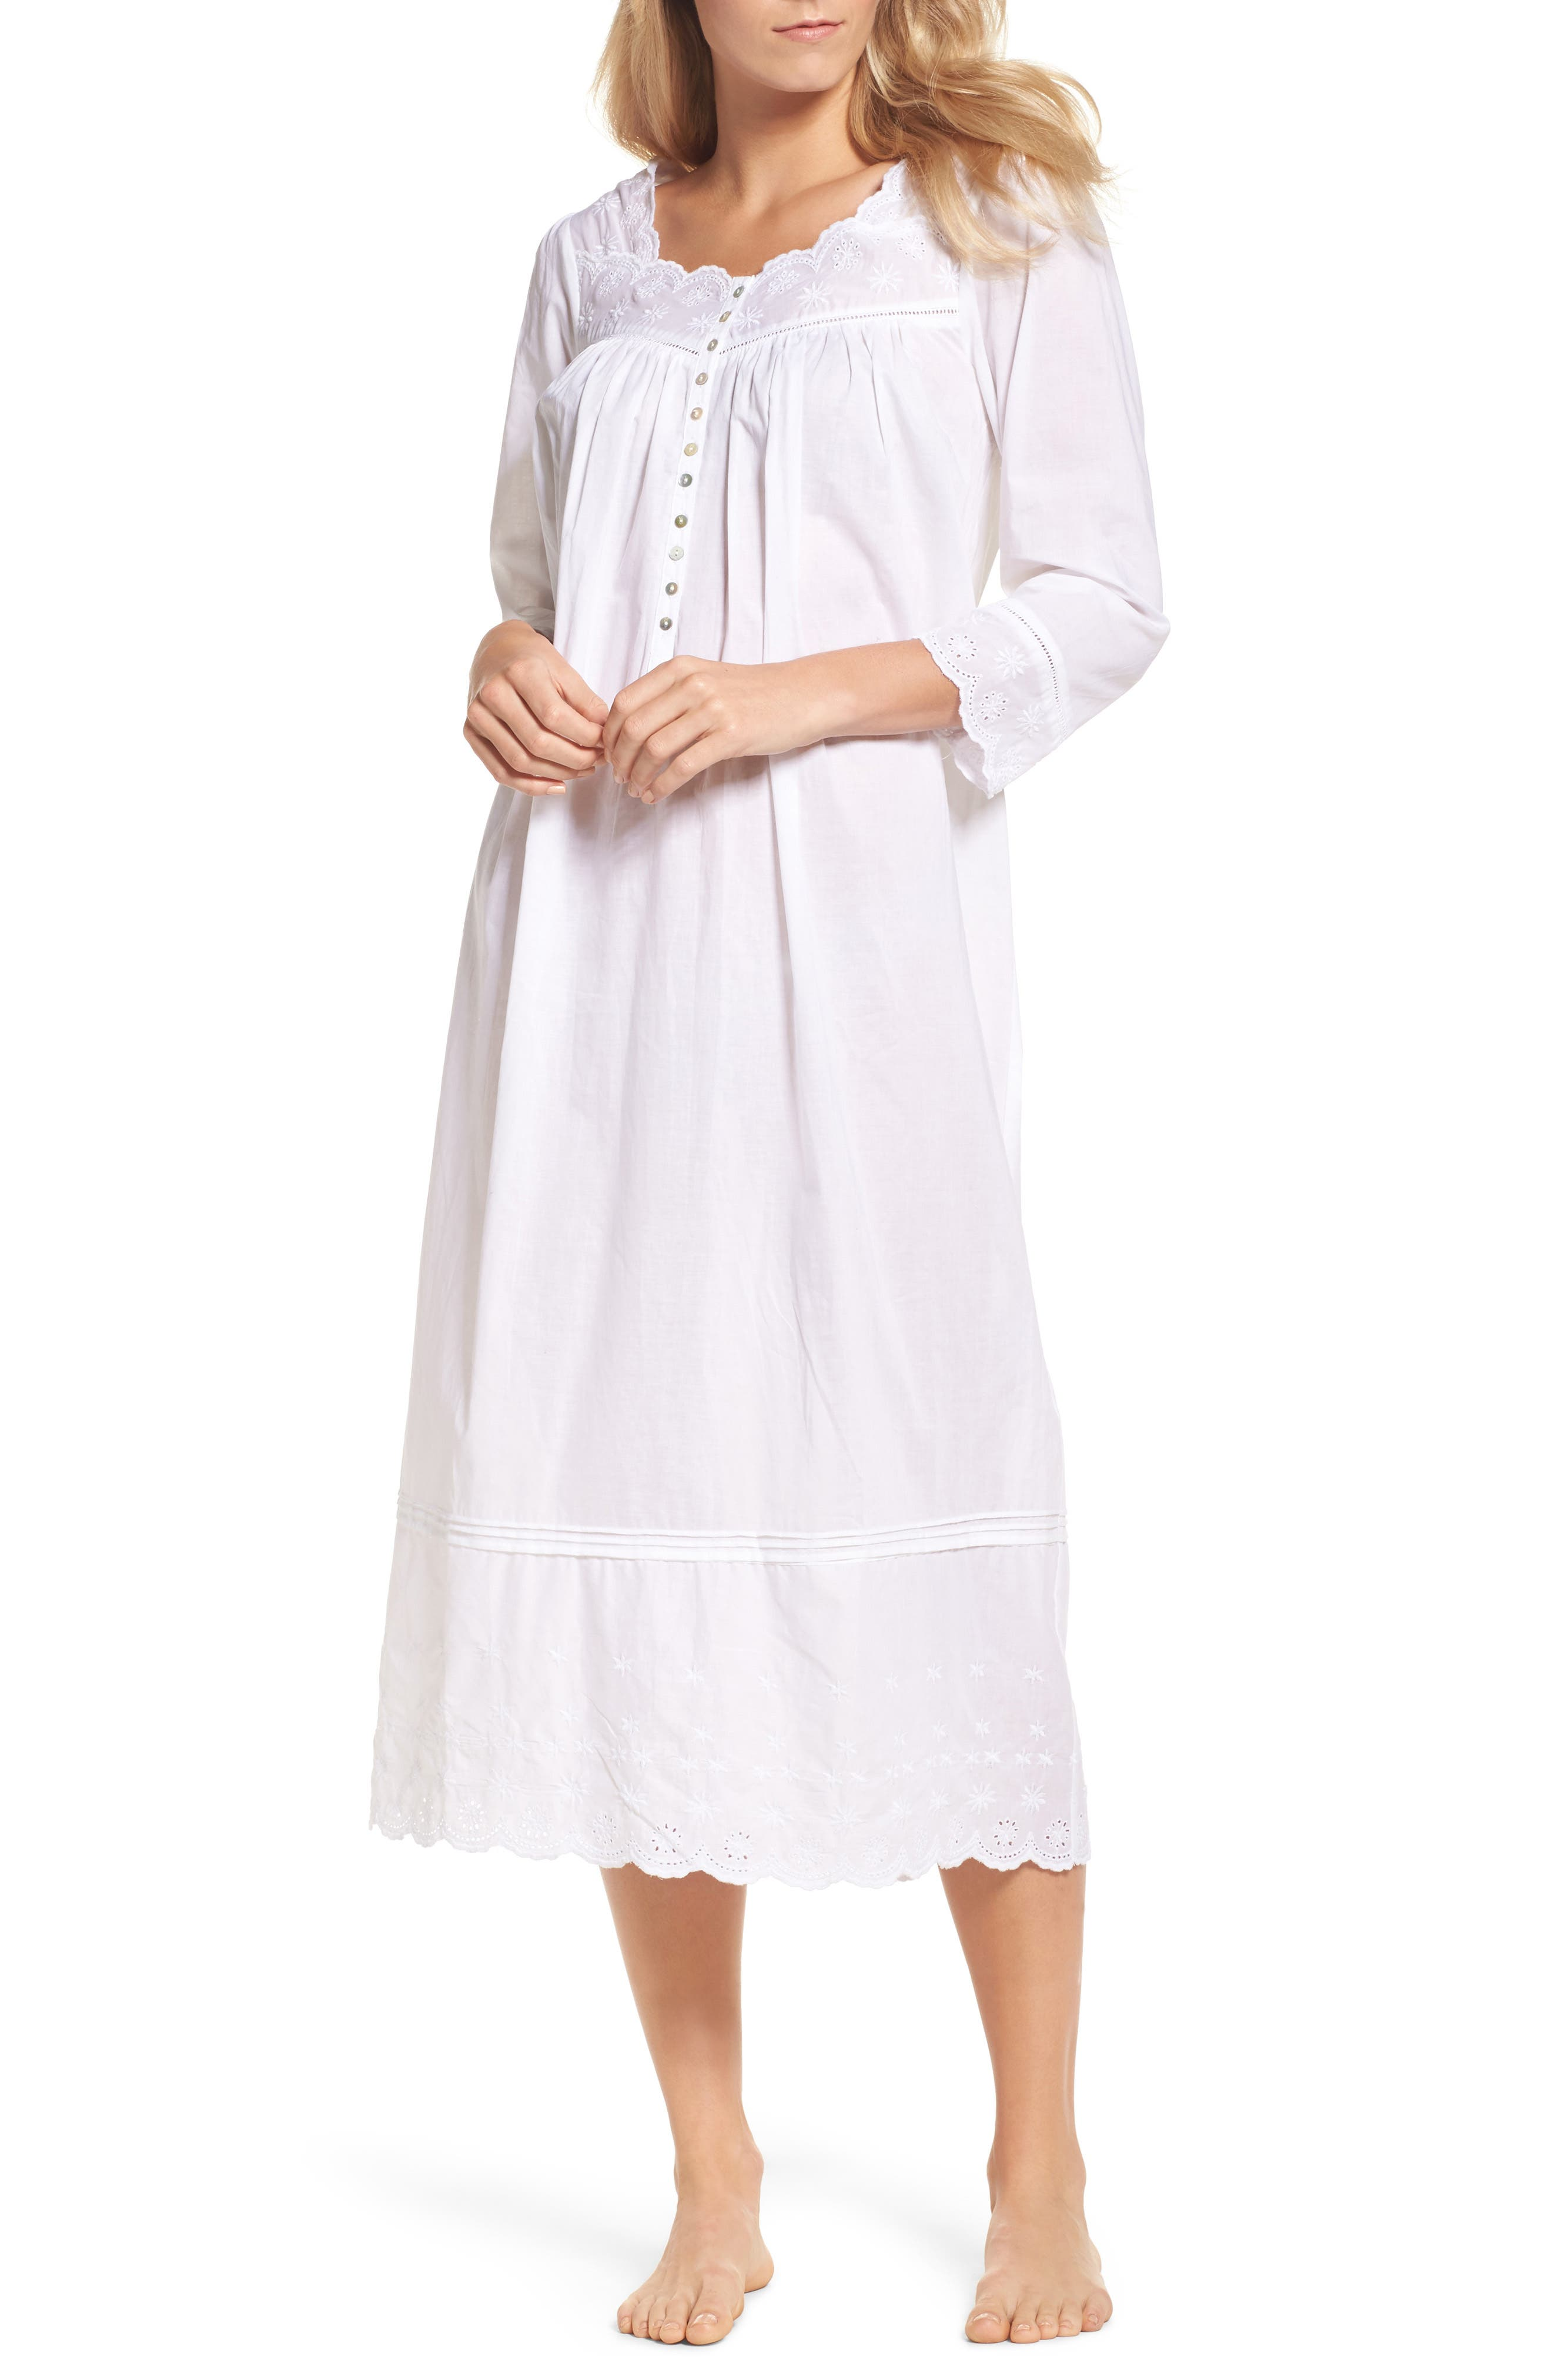 Eyelet Nightgown,                             Main thumbnail 1, color,                             White Floral